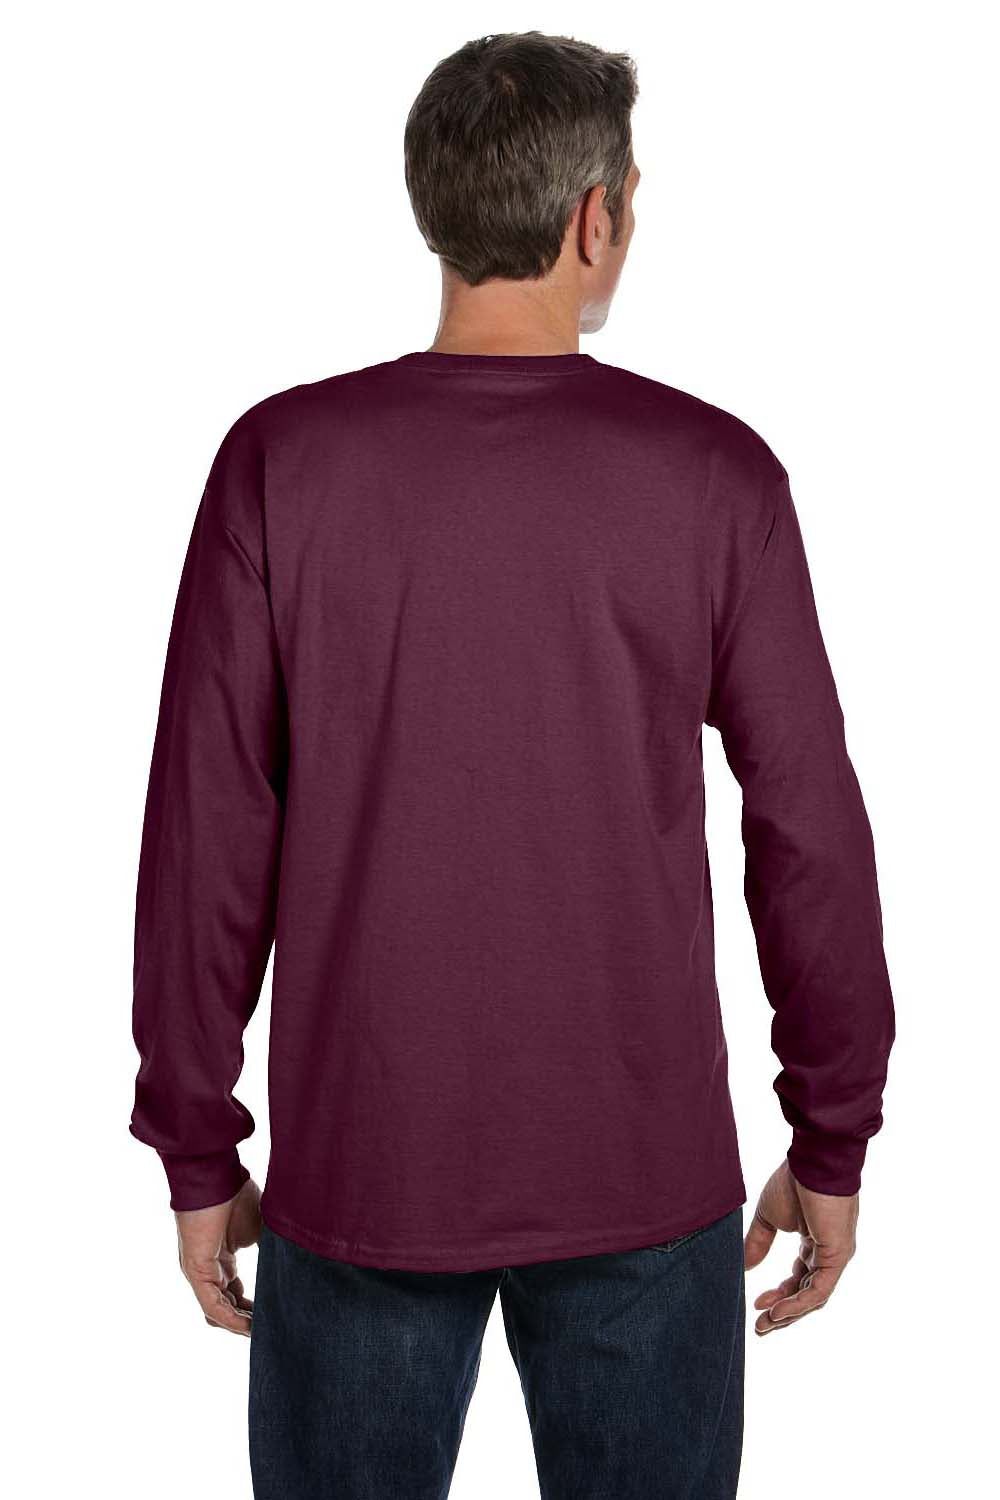 Hanes 5596 Mens ComfortSoft Long Sleeve Crewneck T-Shirt w/ Pocket Maroon Back